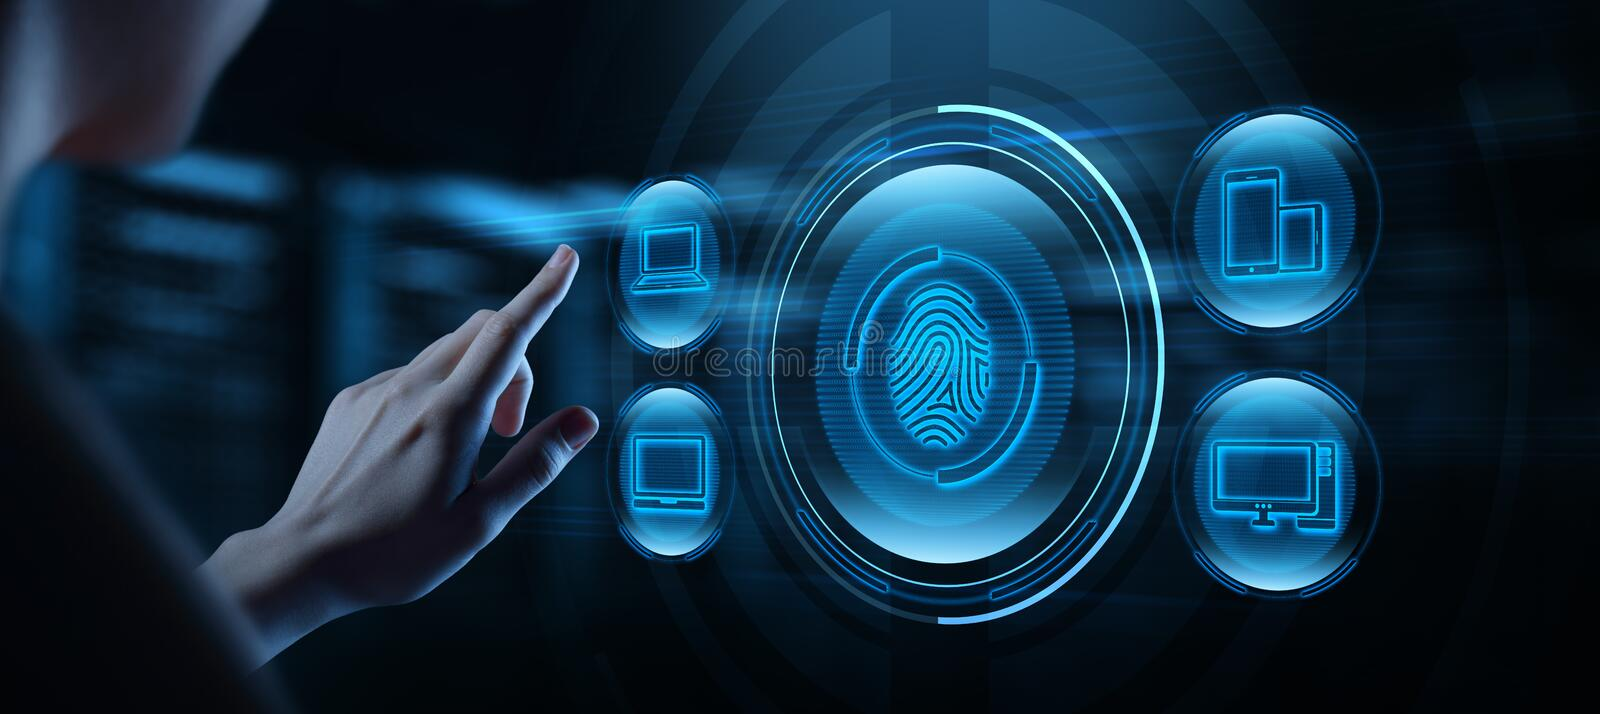 Fingerprint scan provides security access with biometrics identification. Business Technology Safety Internet Concept stock photography